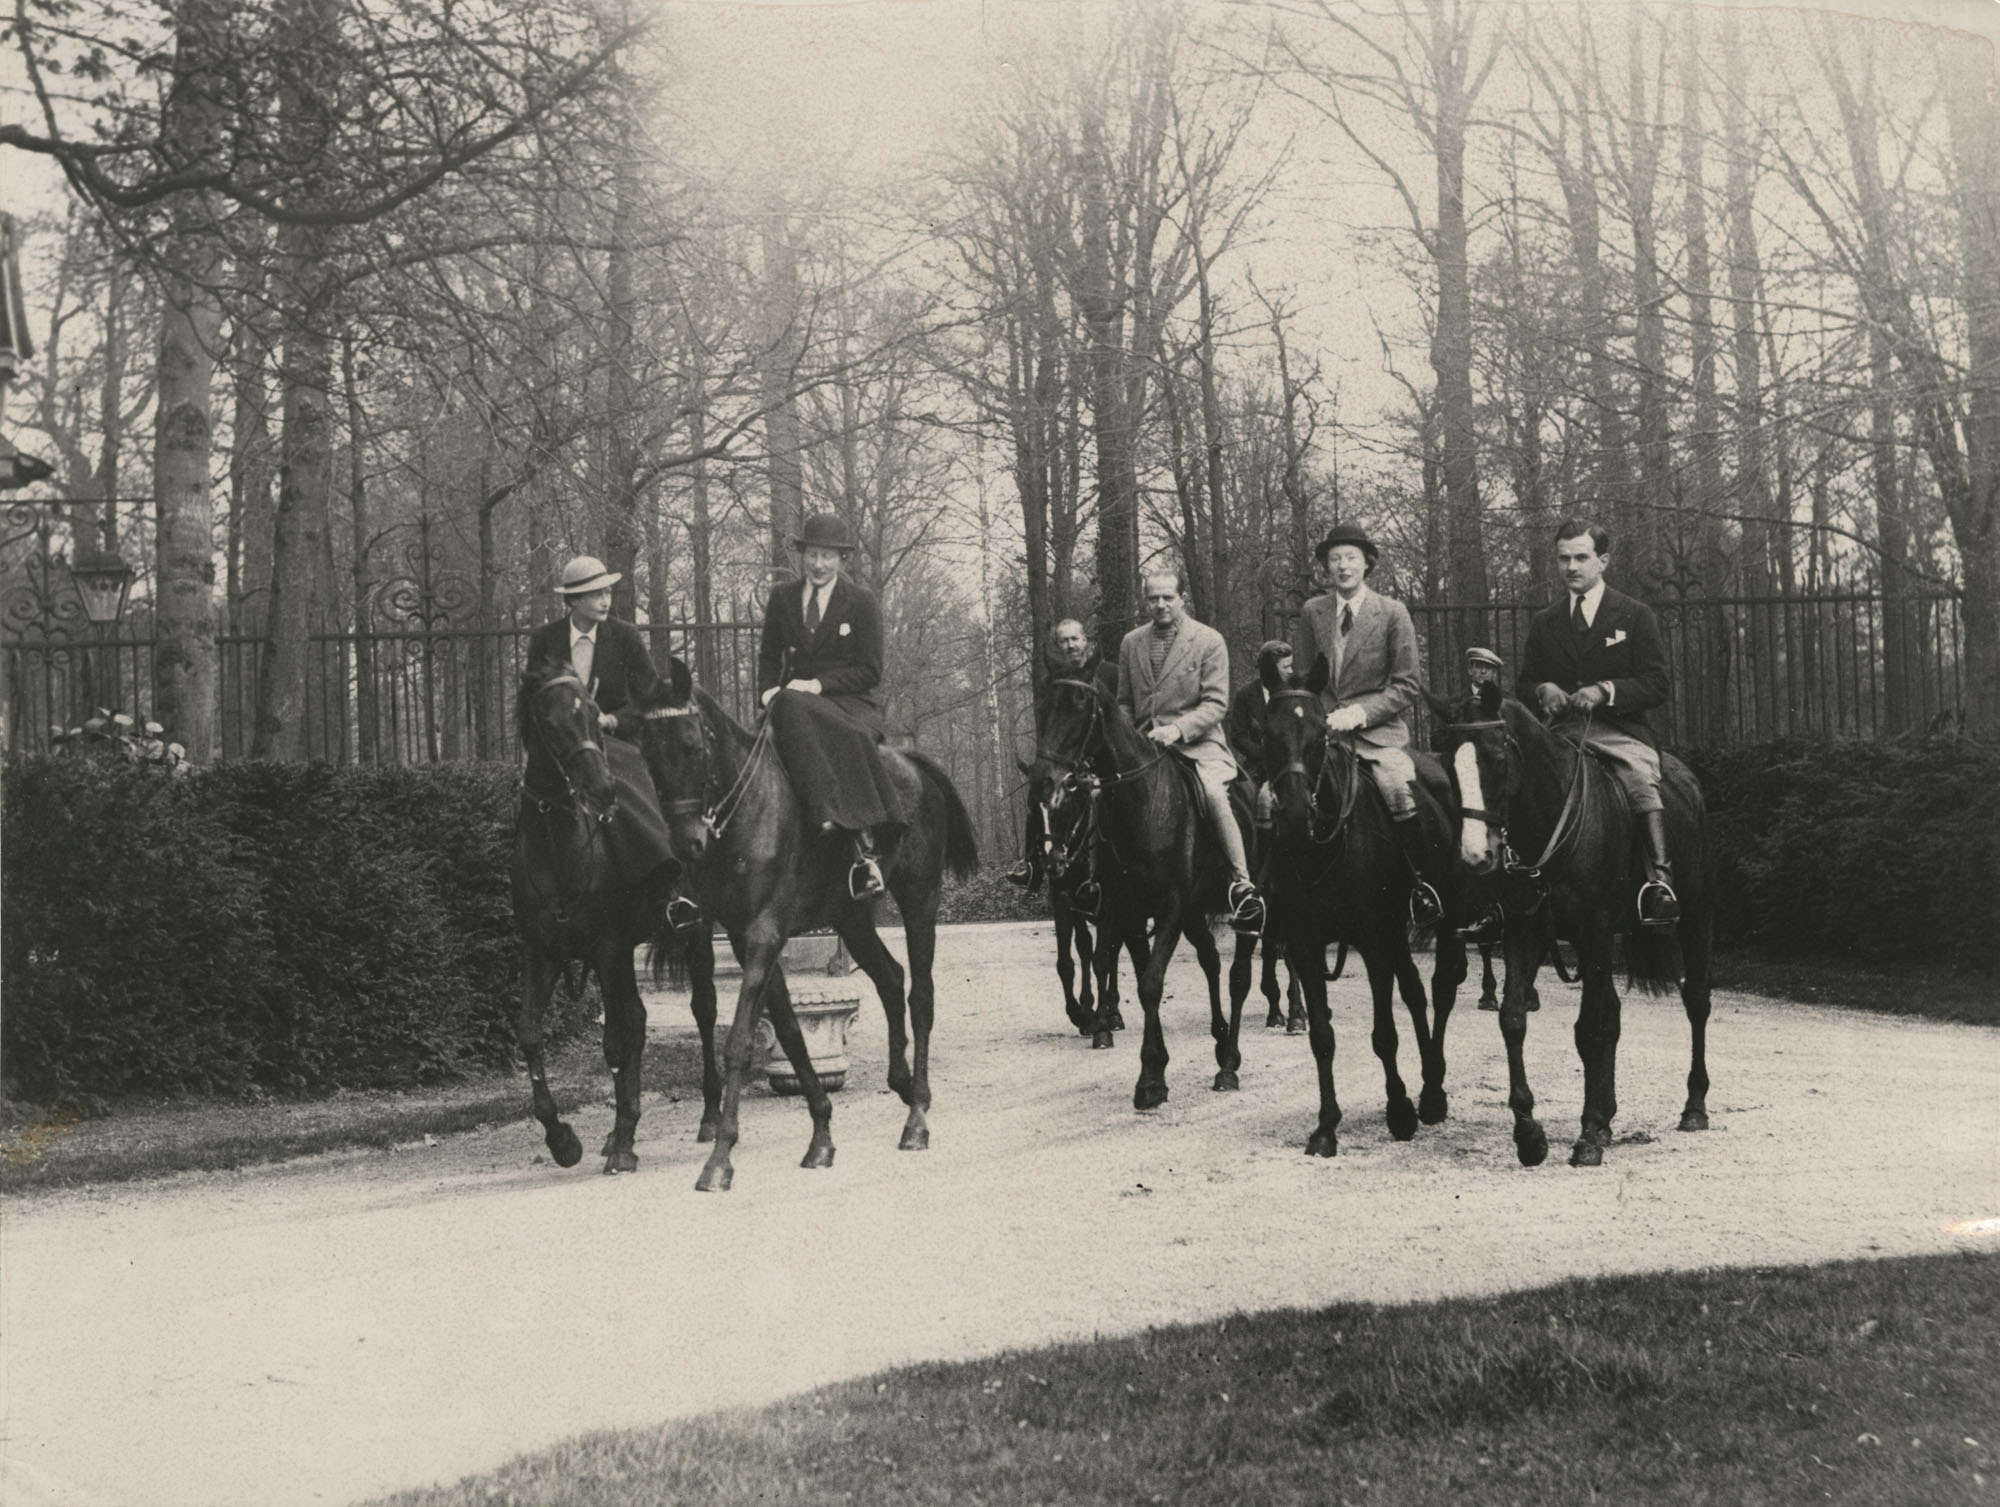 Mario Pansa and unidentified persons astride horses, Photograph 4